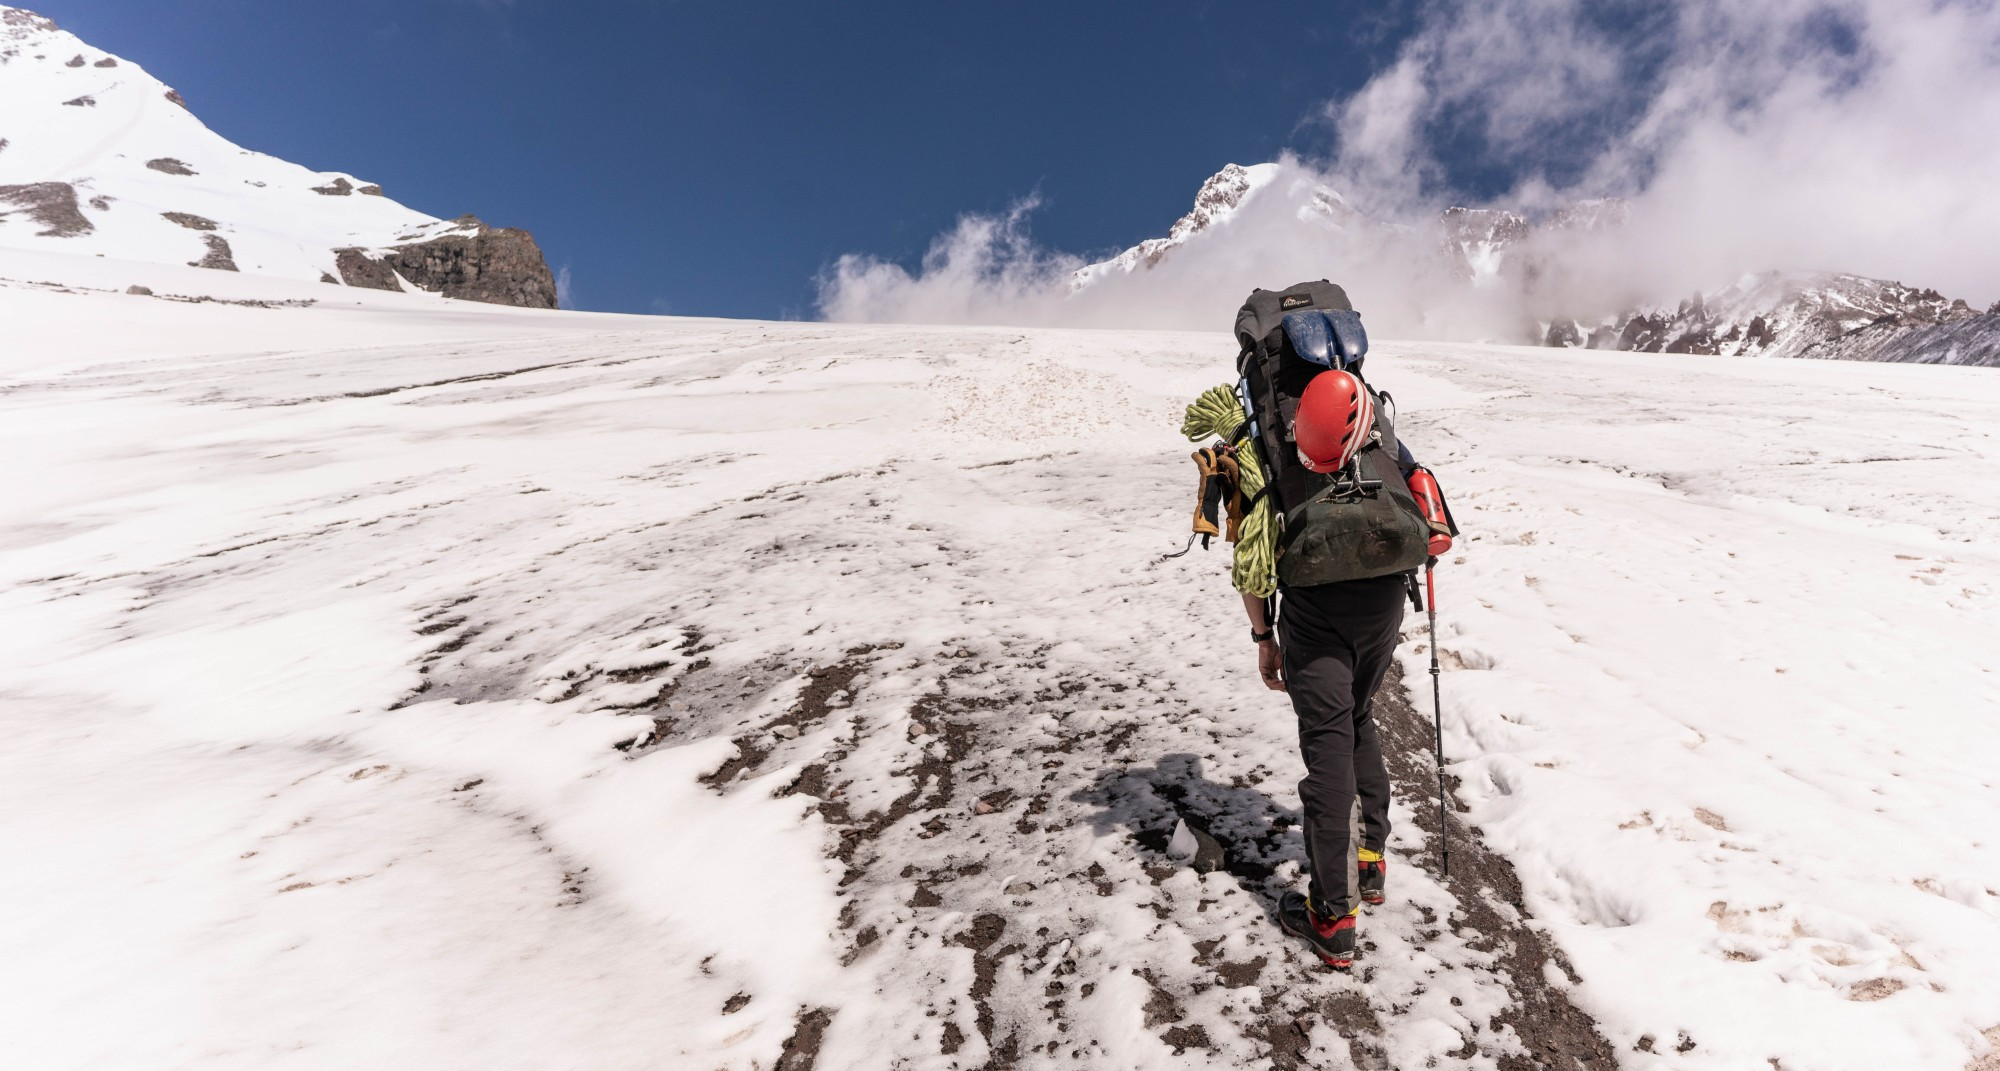 Secret Compass expedition leader Matt Barratt hikes his way towards the summit of Georgia's Mount Kazbek